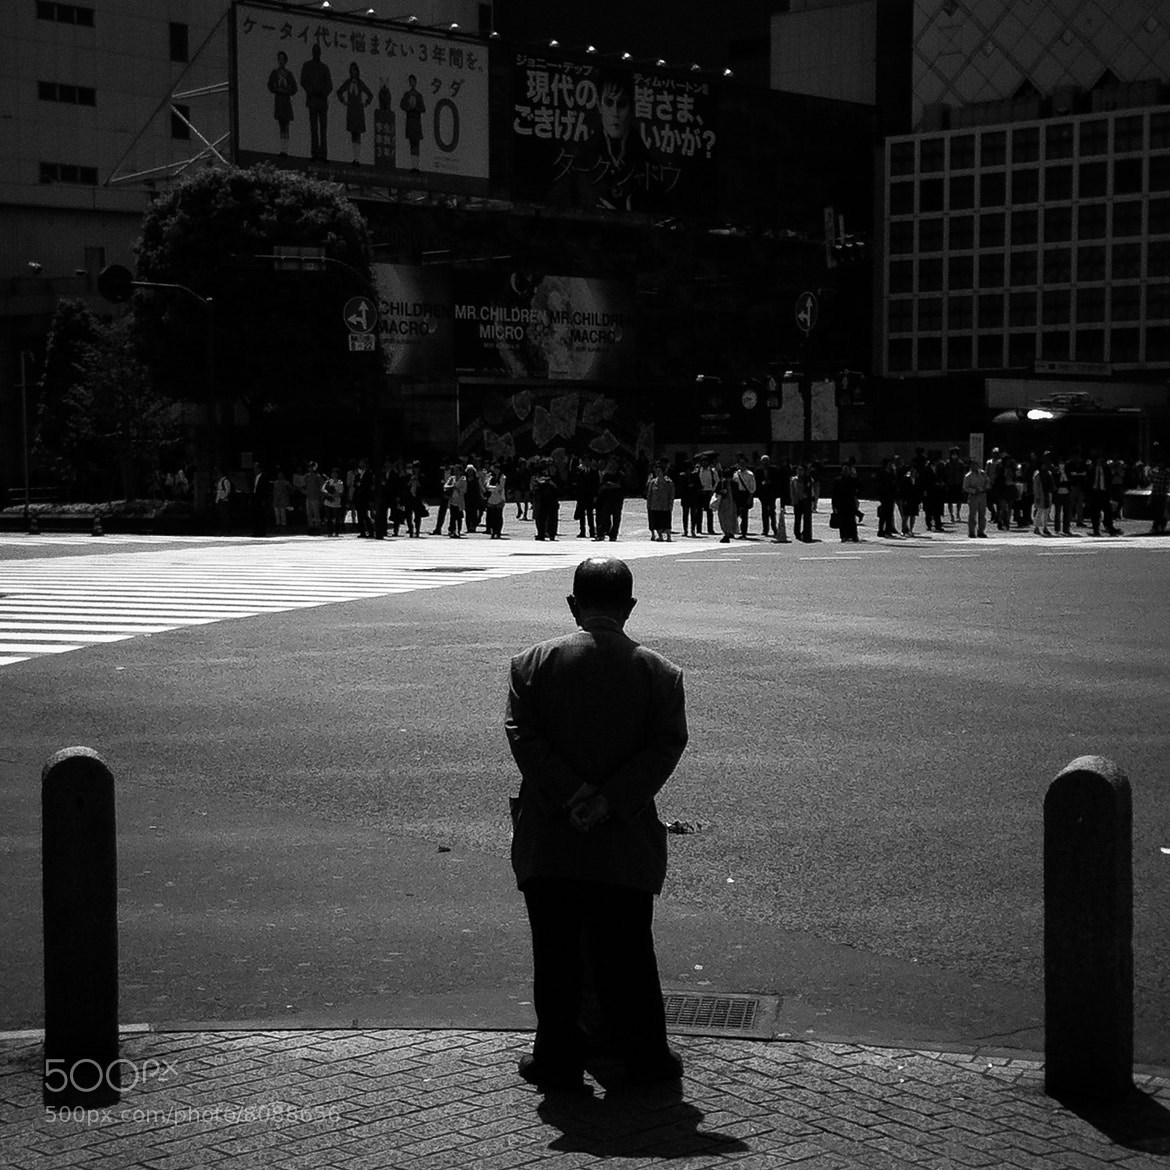 Photograph Alone in the street by Baris Ozturk on 500px